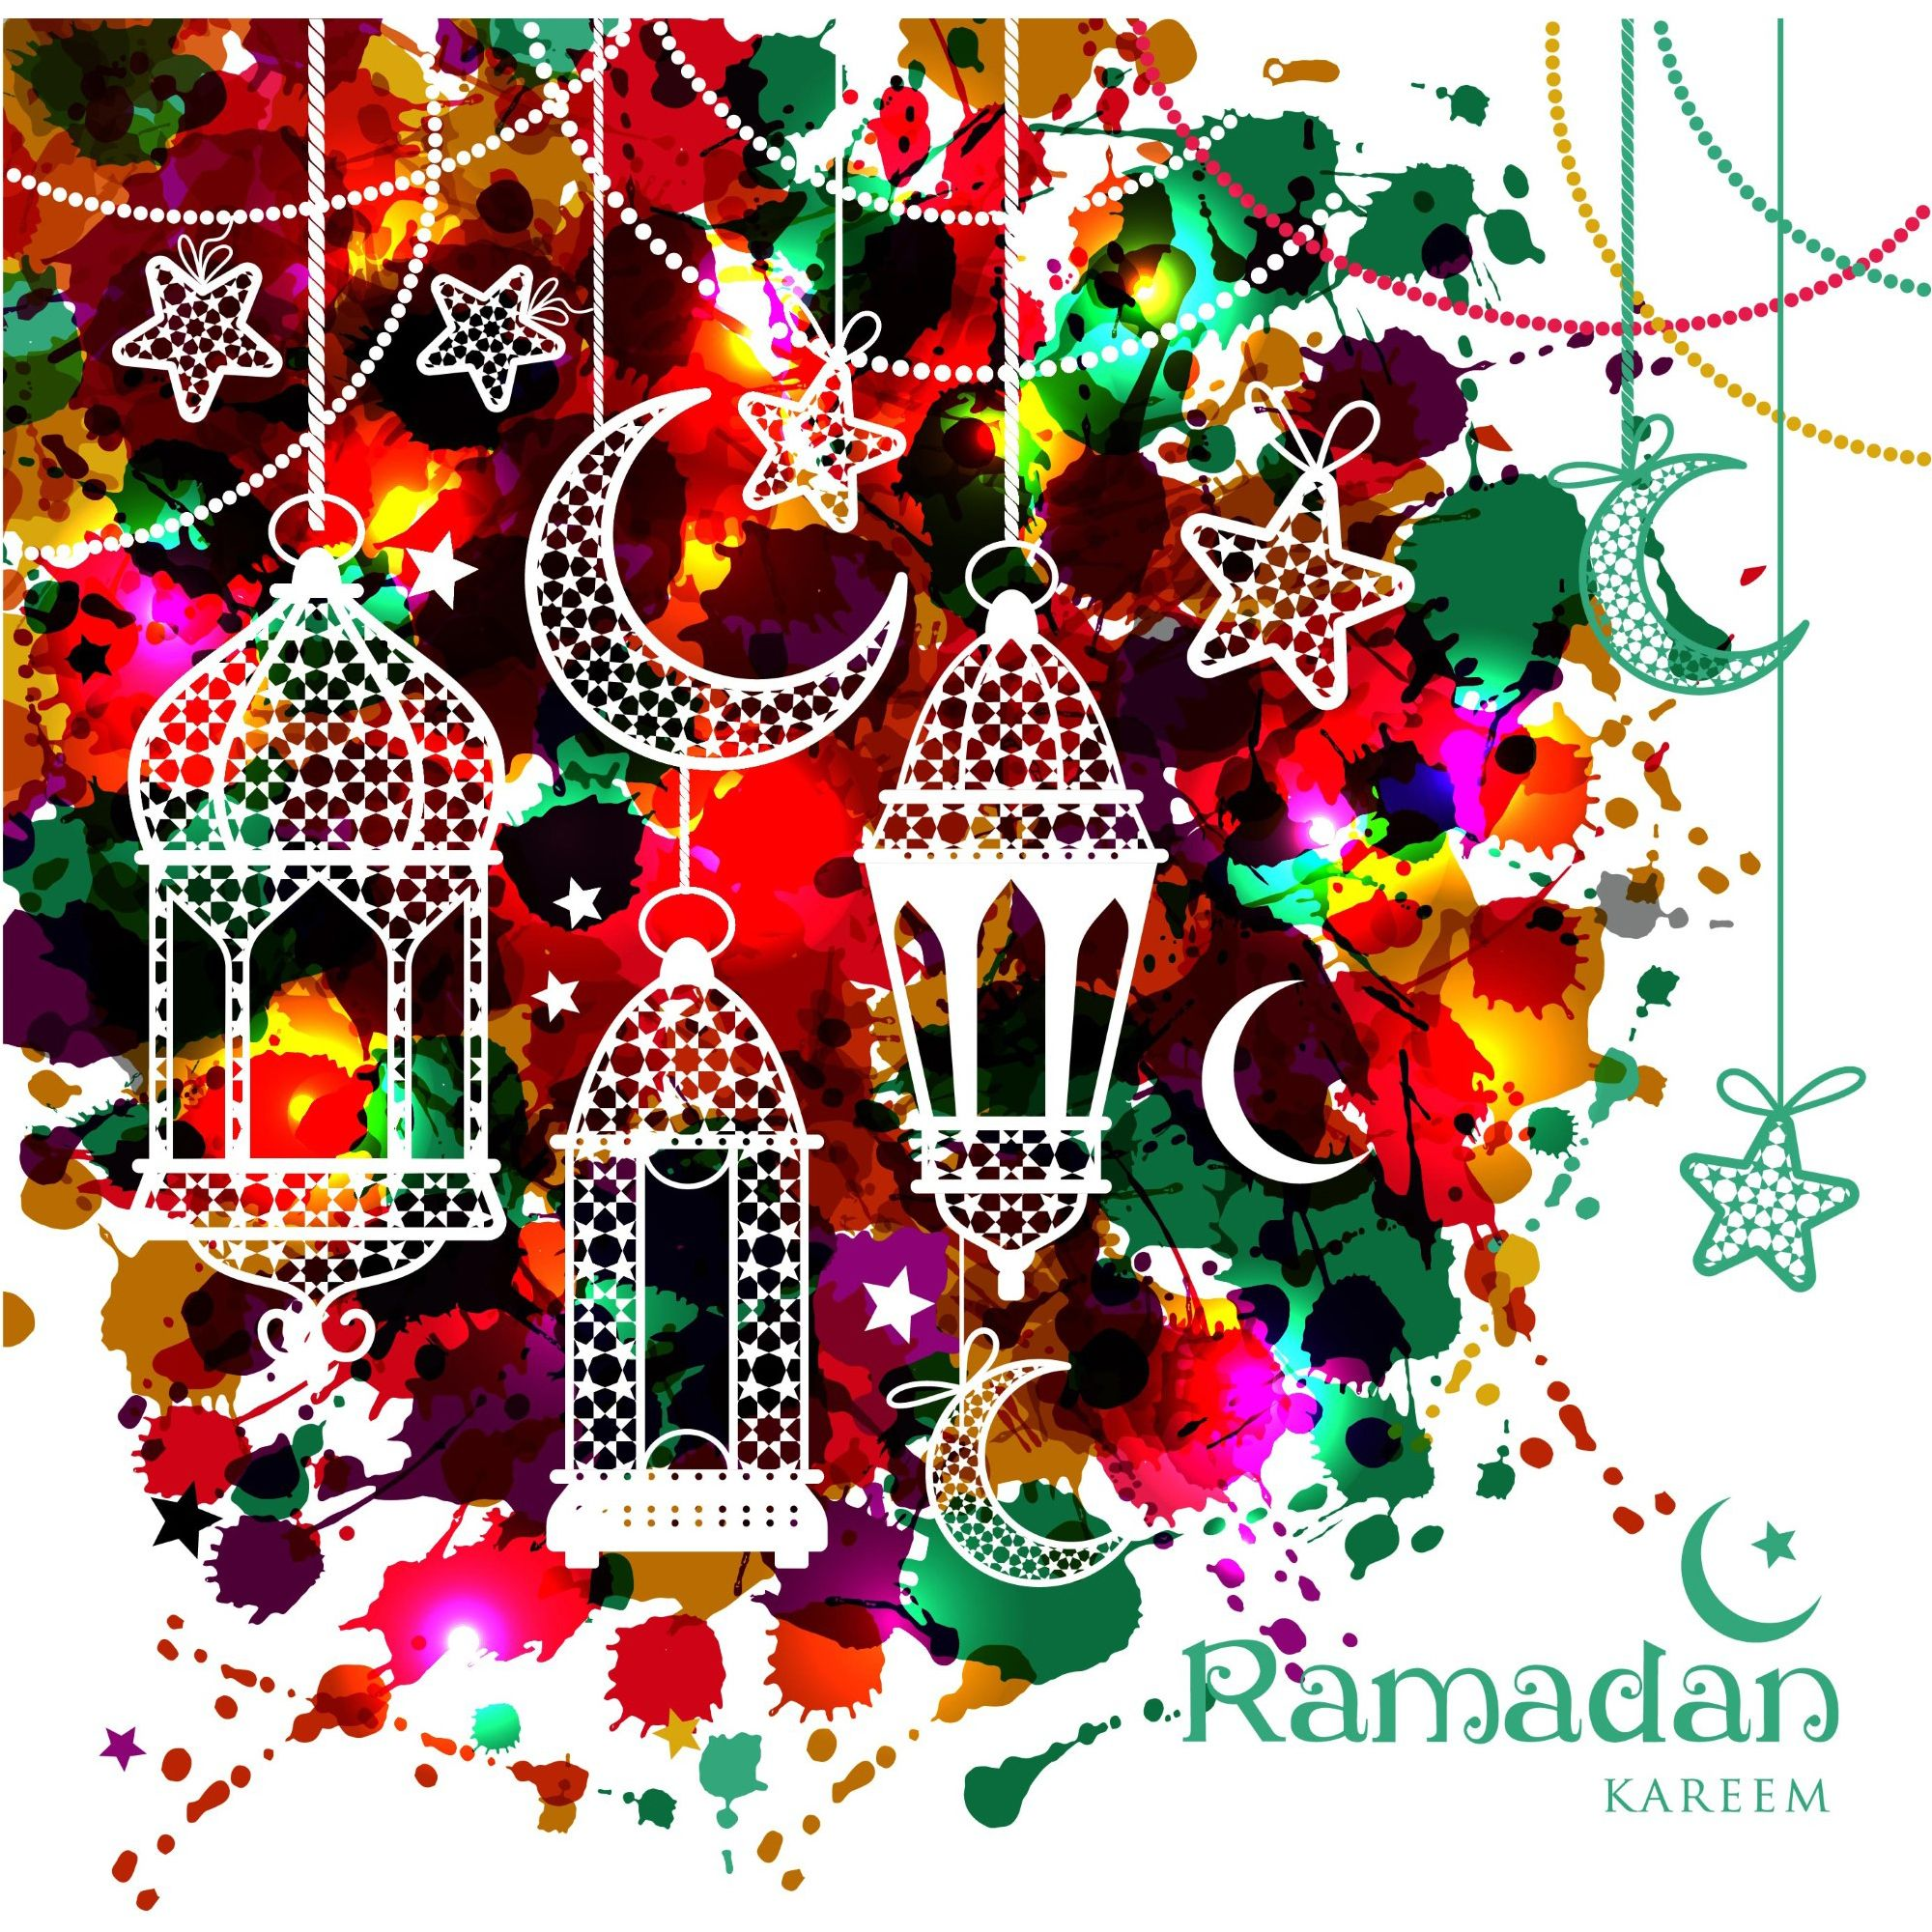 Greeting card or invitation for muslim community events vector greeting card or invitation for muslim community events vector illustration eid greeting cardsfree kristyandbryce Image collections